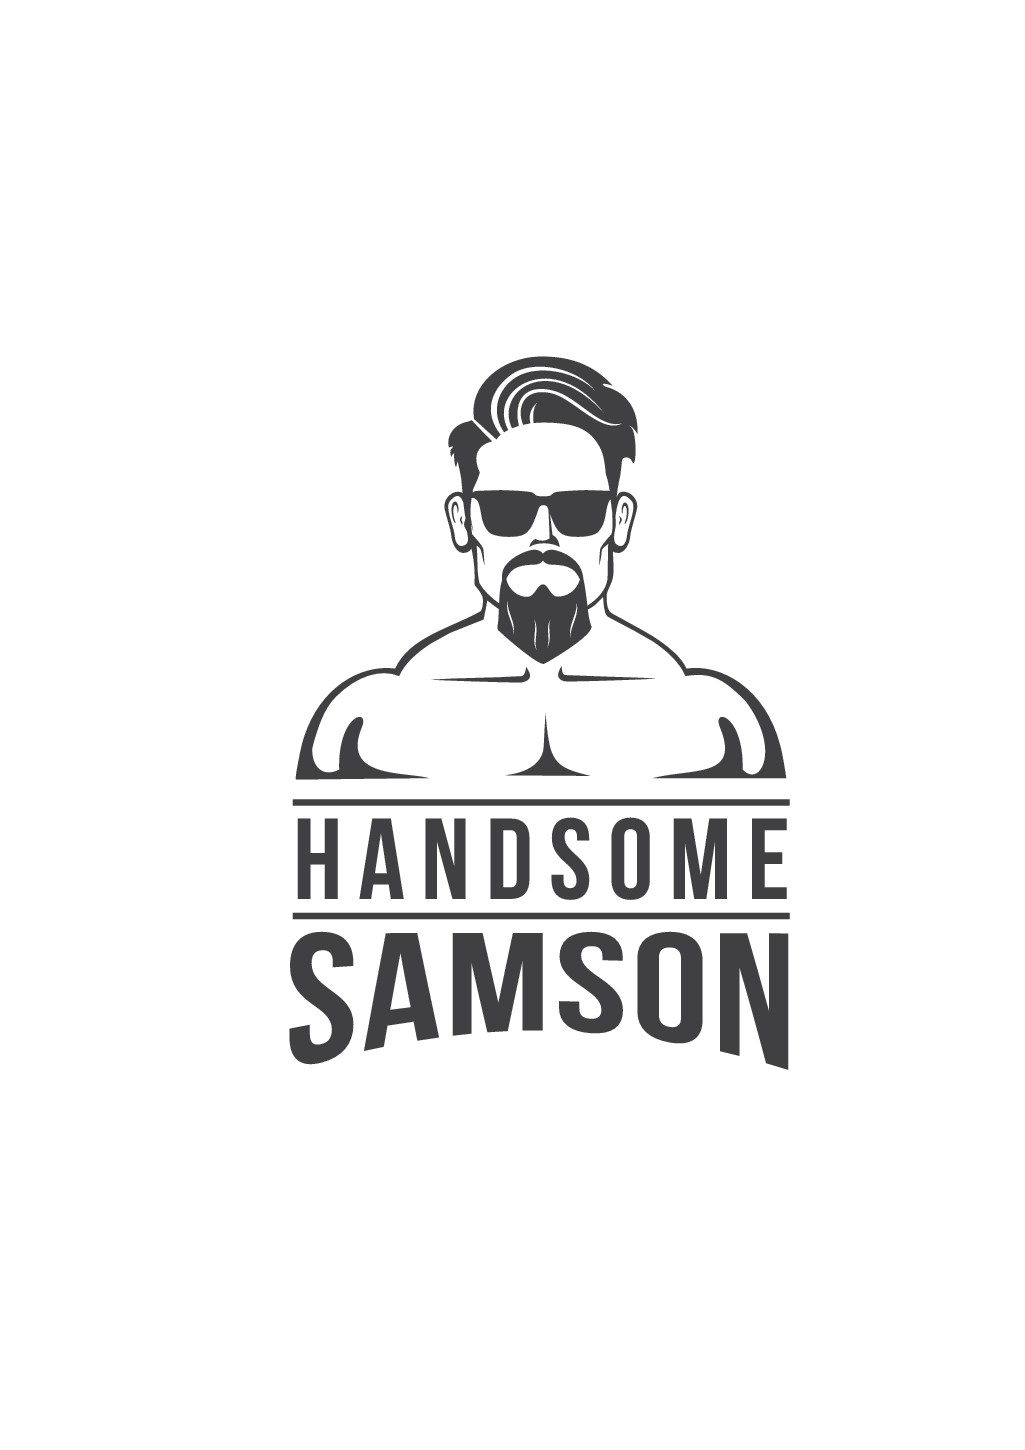 Guaranteed $399 Design Challenge - Need Metrosexual Samson Logo - Contest EXTENDED!!!